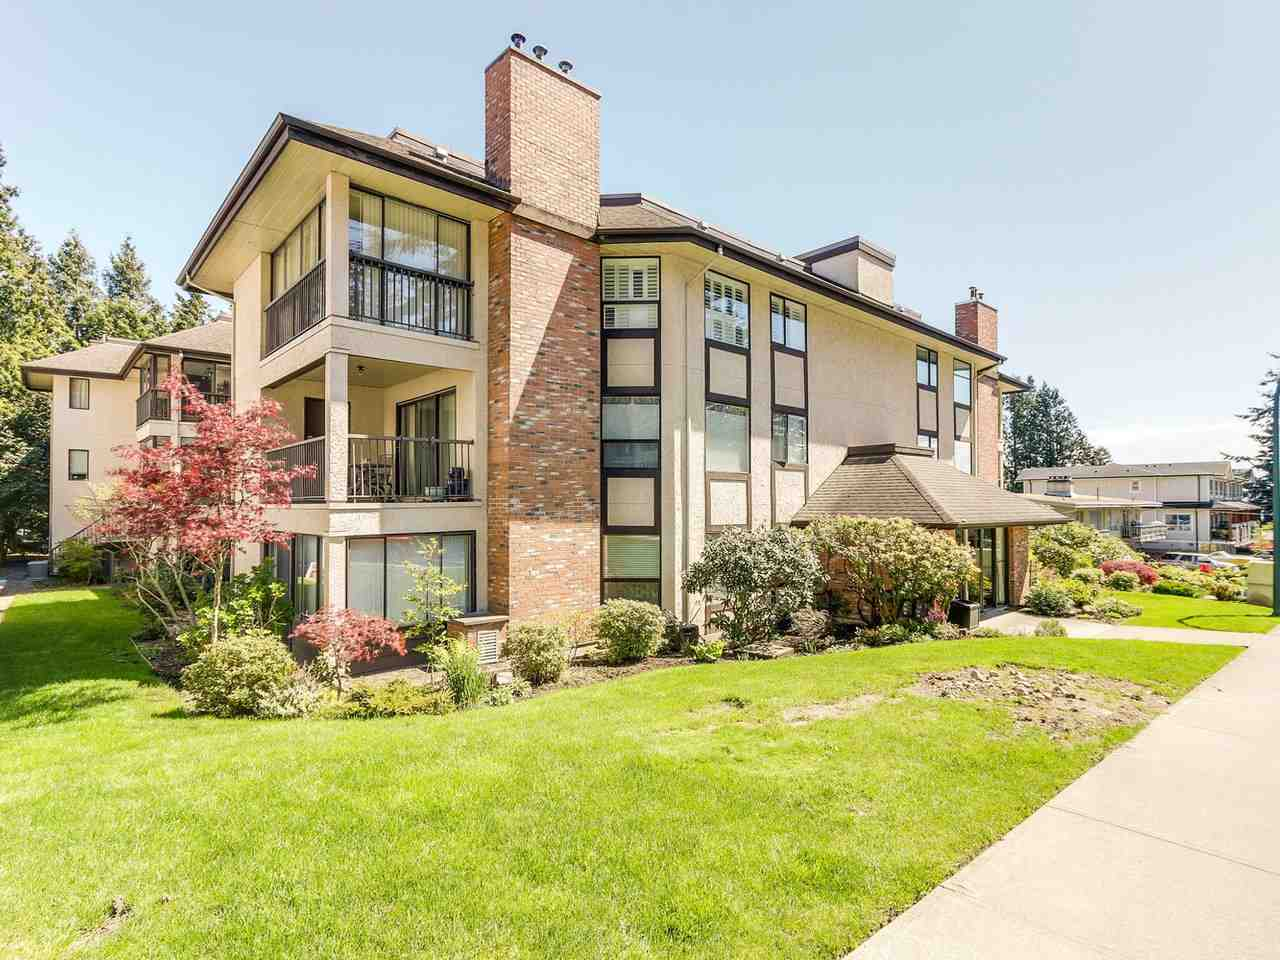 Main Photo: 204 1480 VIDAL Street: White Rock Condo for sale (South Surrey White Rock)  : MLS® # R2161282